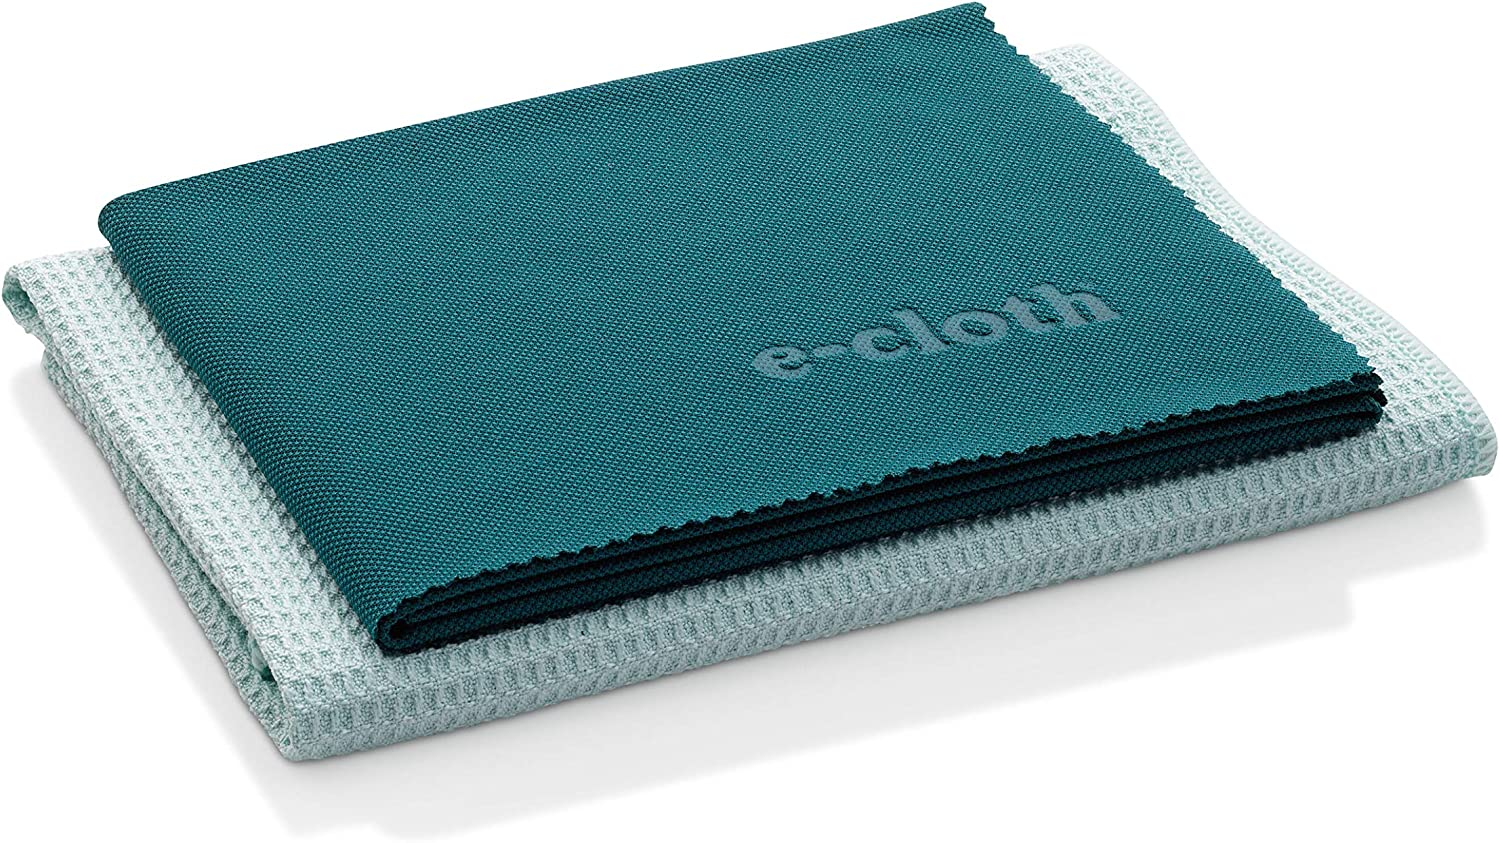 E-Cloth Cleaning Cloth & Polishing Cloth for Windows